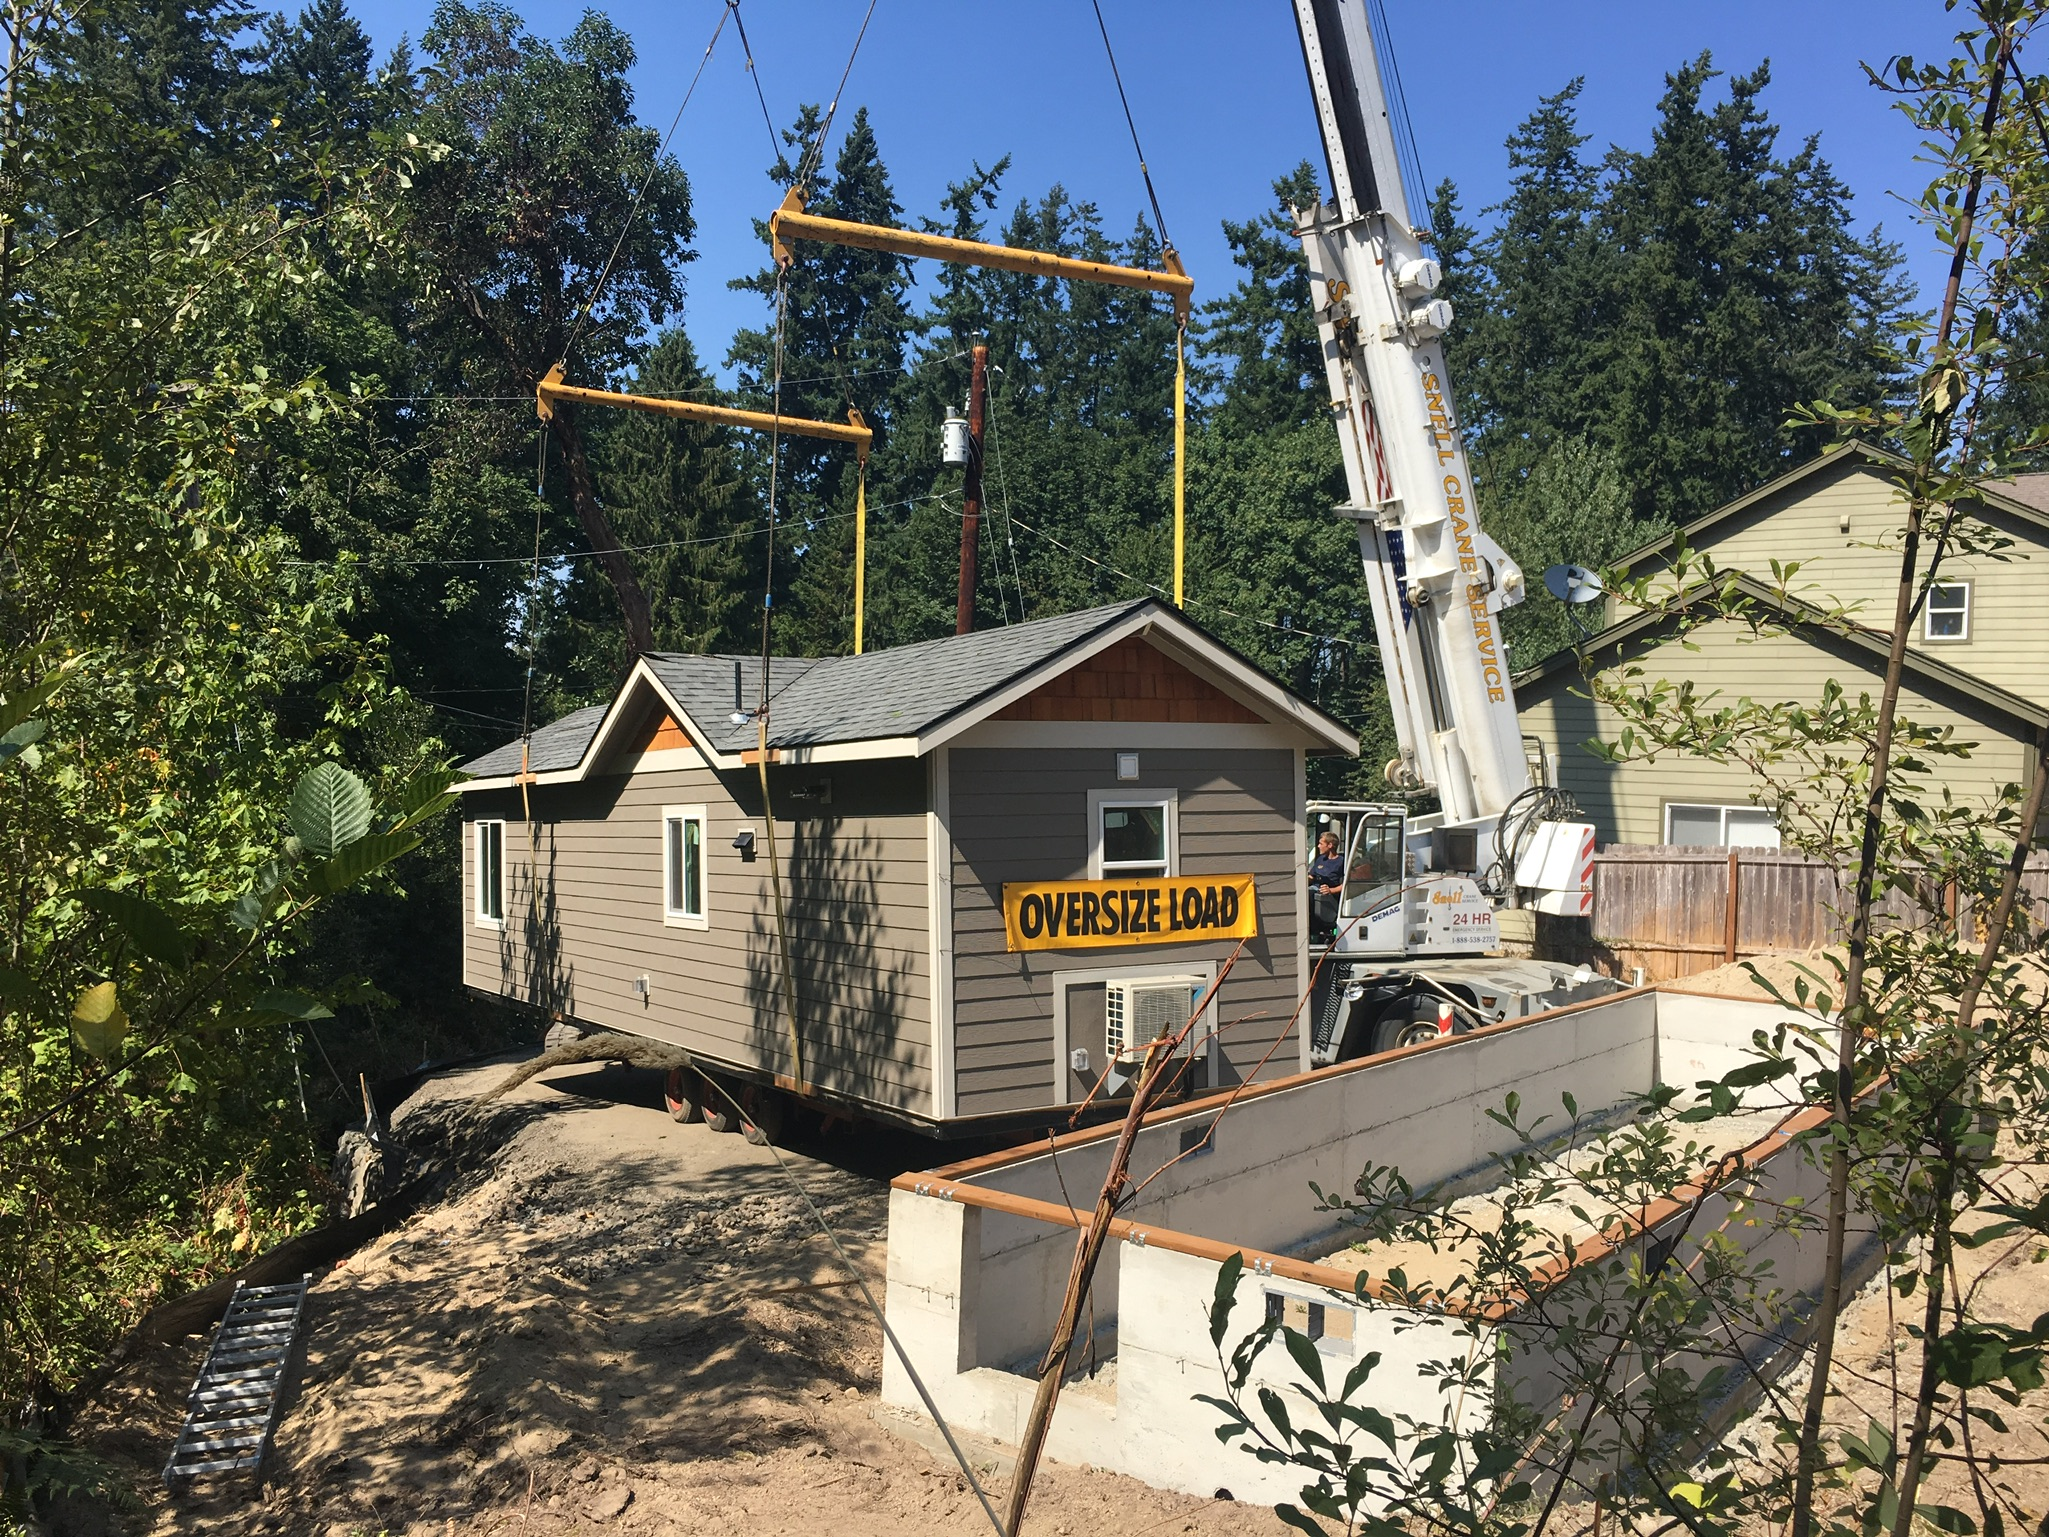 Backyard cottage being delivered to home by crane